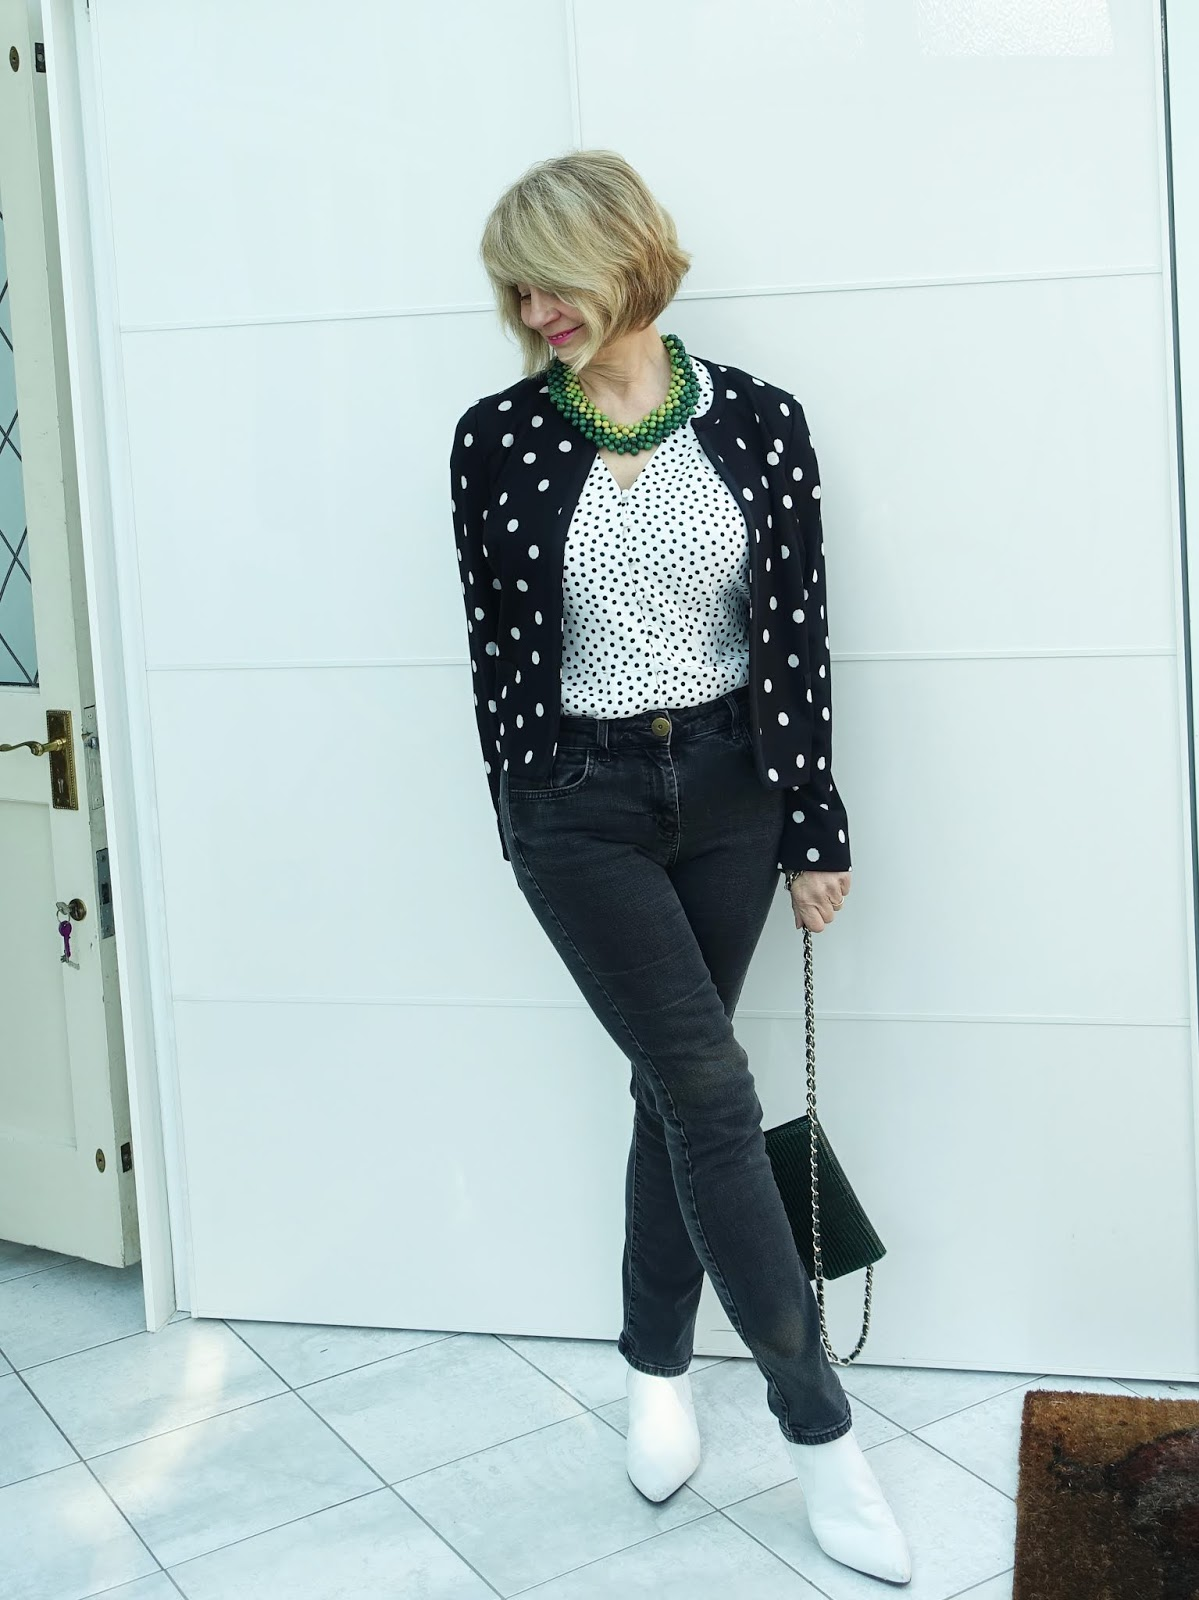 Polka dot jacket and top worn with black jeans and white boots with green accessories